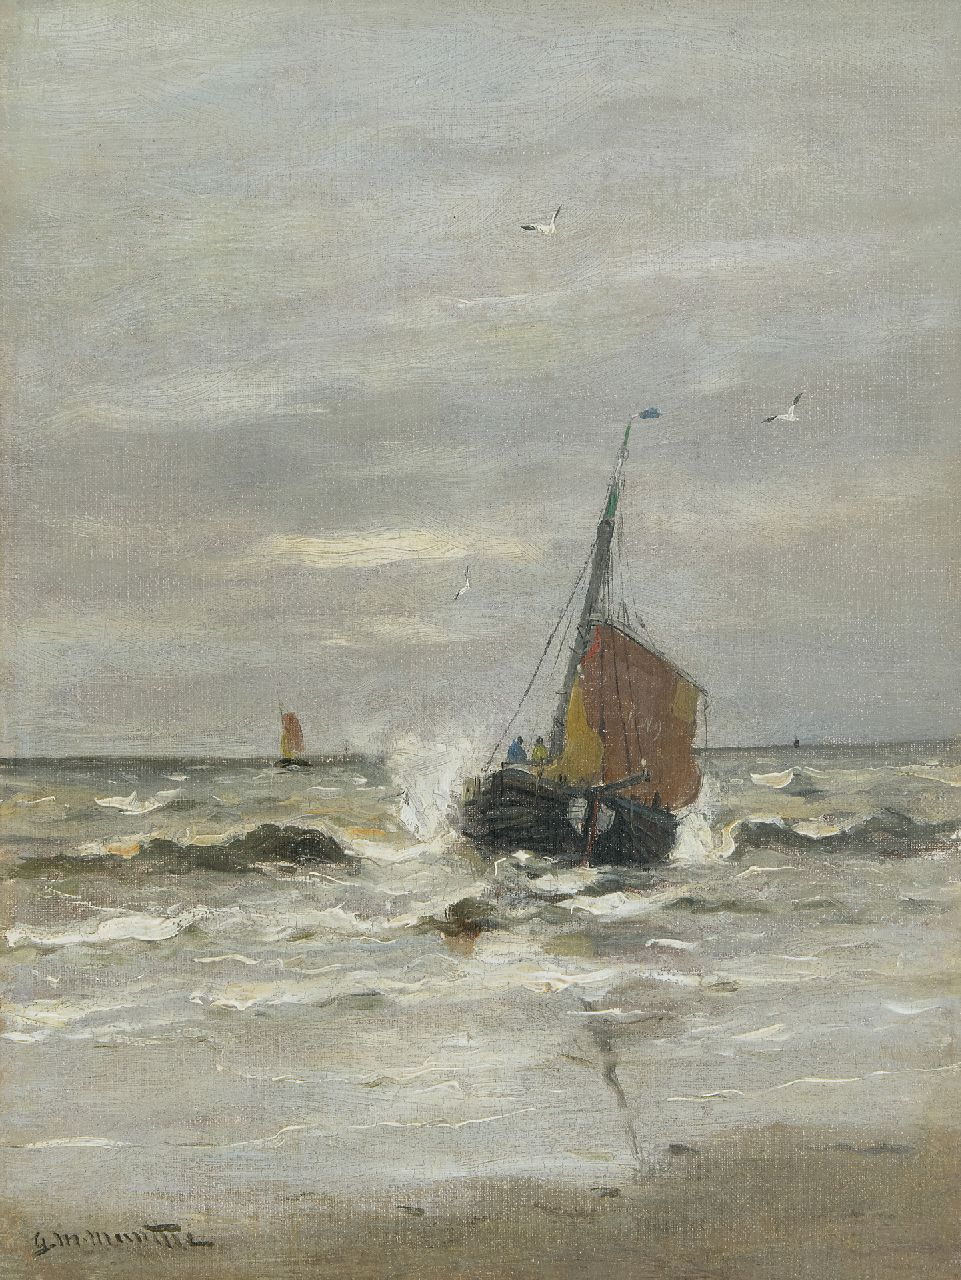 Munthe G.A.L.  | Gerhard Arij Ludwig 'Morgenstjerne' Munthe | Paintings offered for sale | The 'KW9' leaving the beach of Katwijk, oil on canvas 40.4 x 30.8 cm, signed l.l.